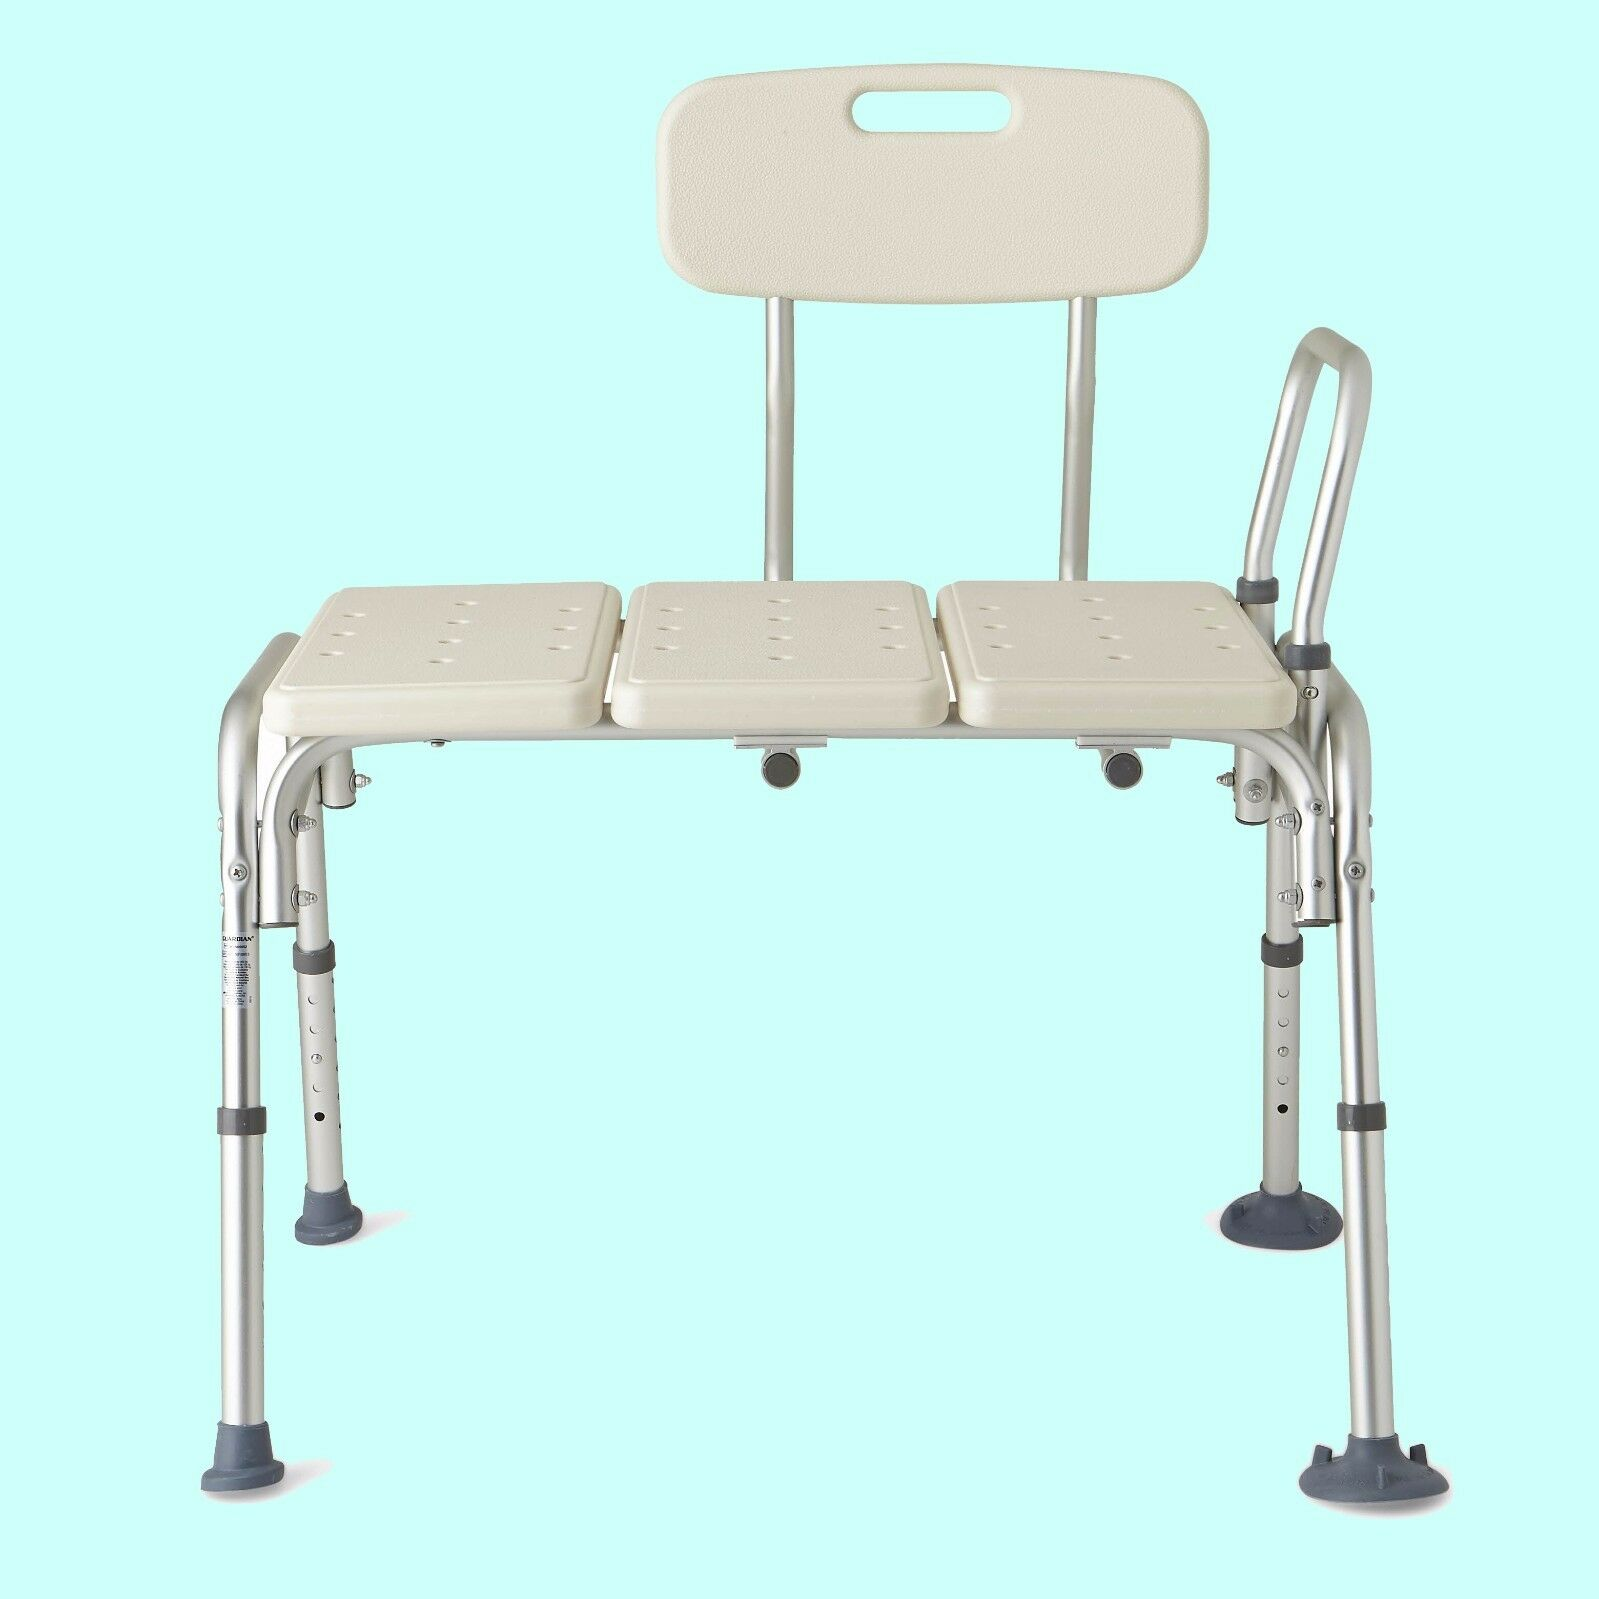 BATHTUB TRANSFER BENCH Shower Safety Handicap Chair Adjustable Seat ...